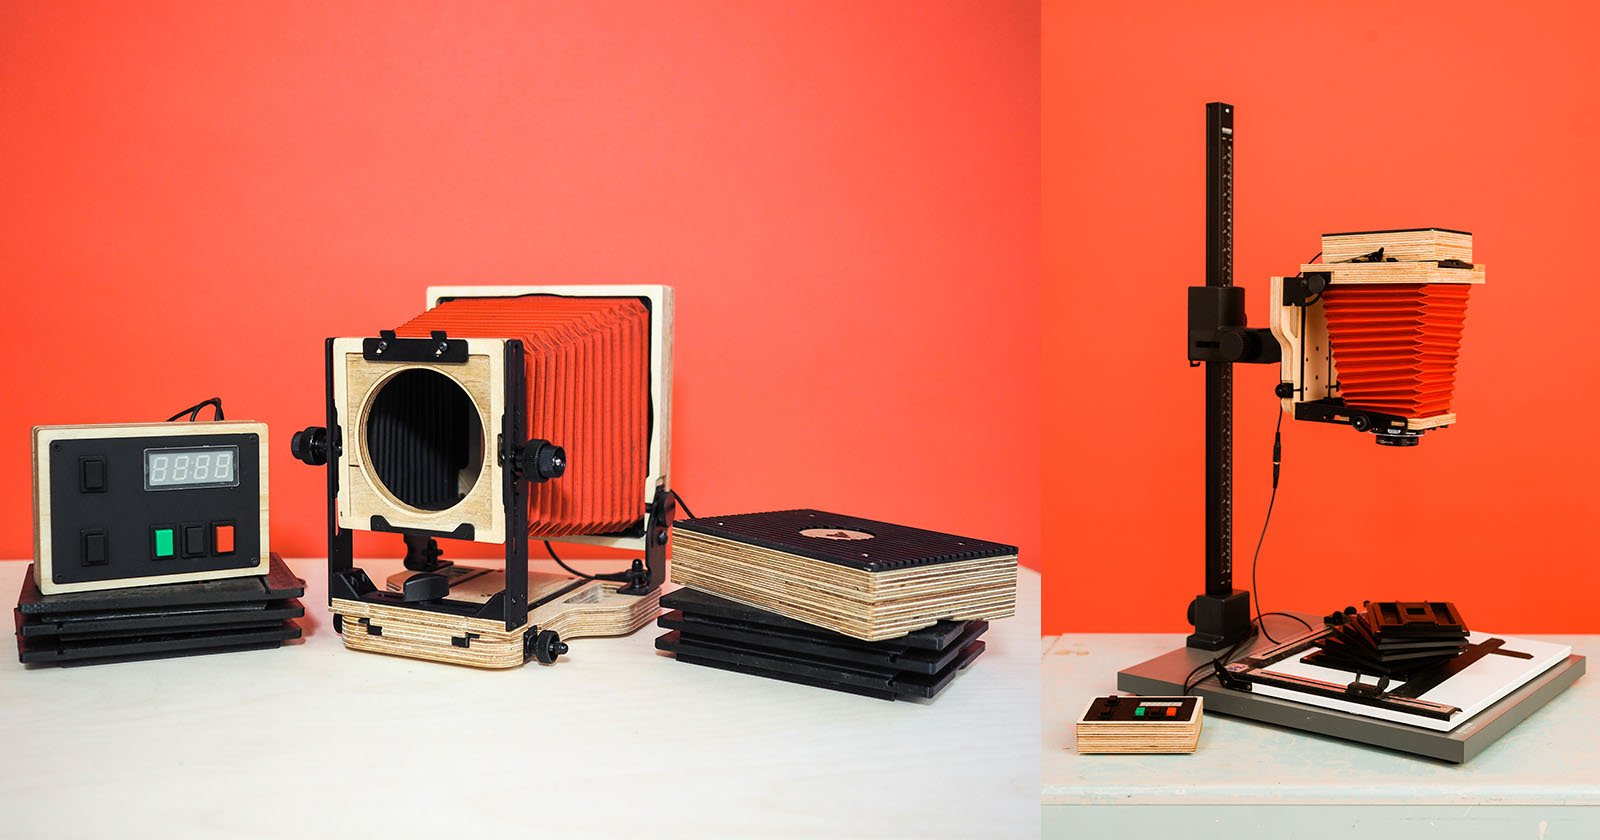 The Intrepid Enlarger Turns Any 4x5 Camera into a Darkroom Enlarger